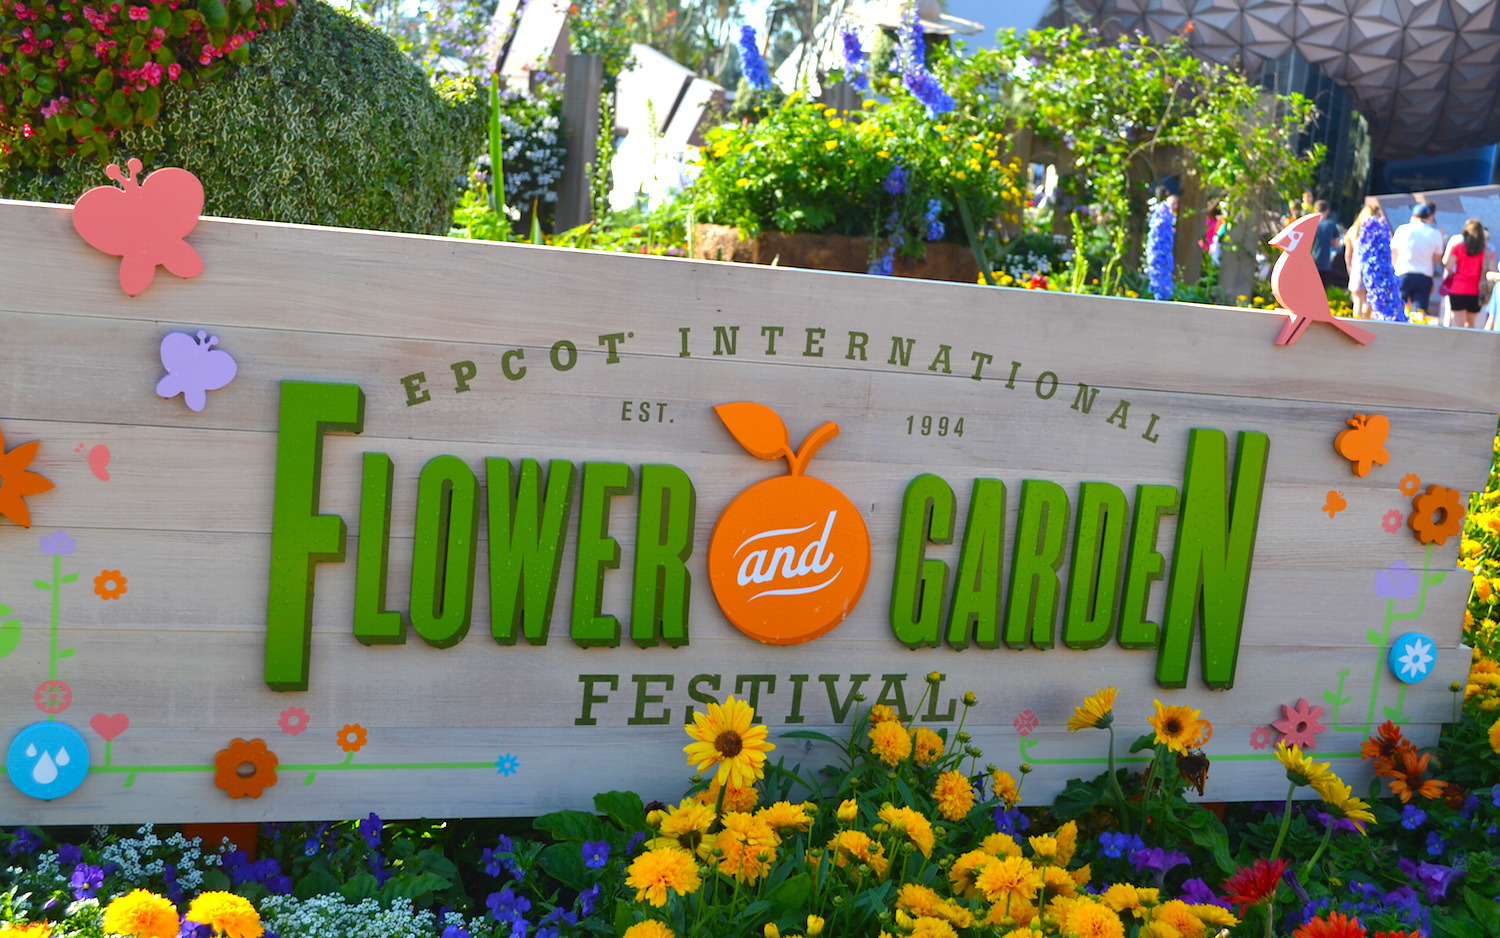 EPCOT's International Flower and Garden Festival 2015